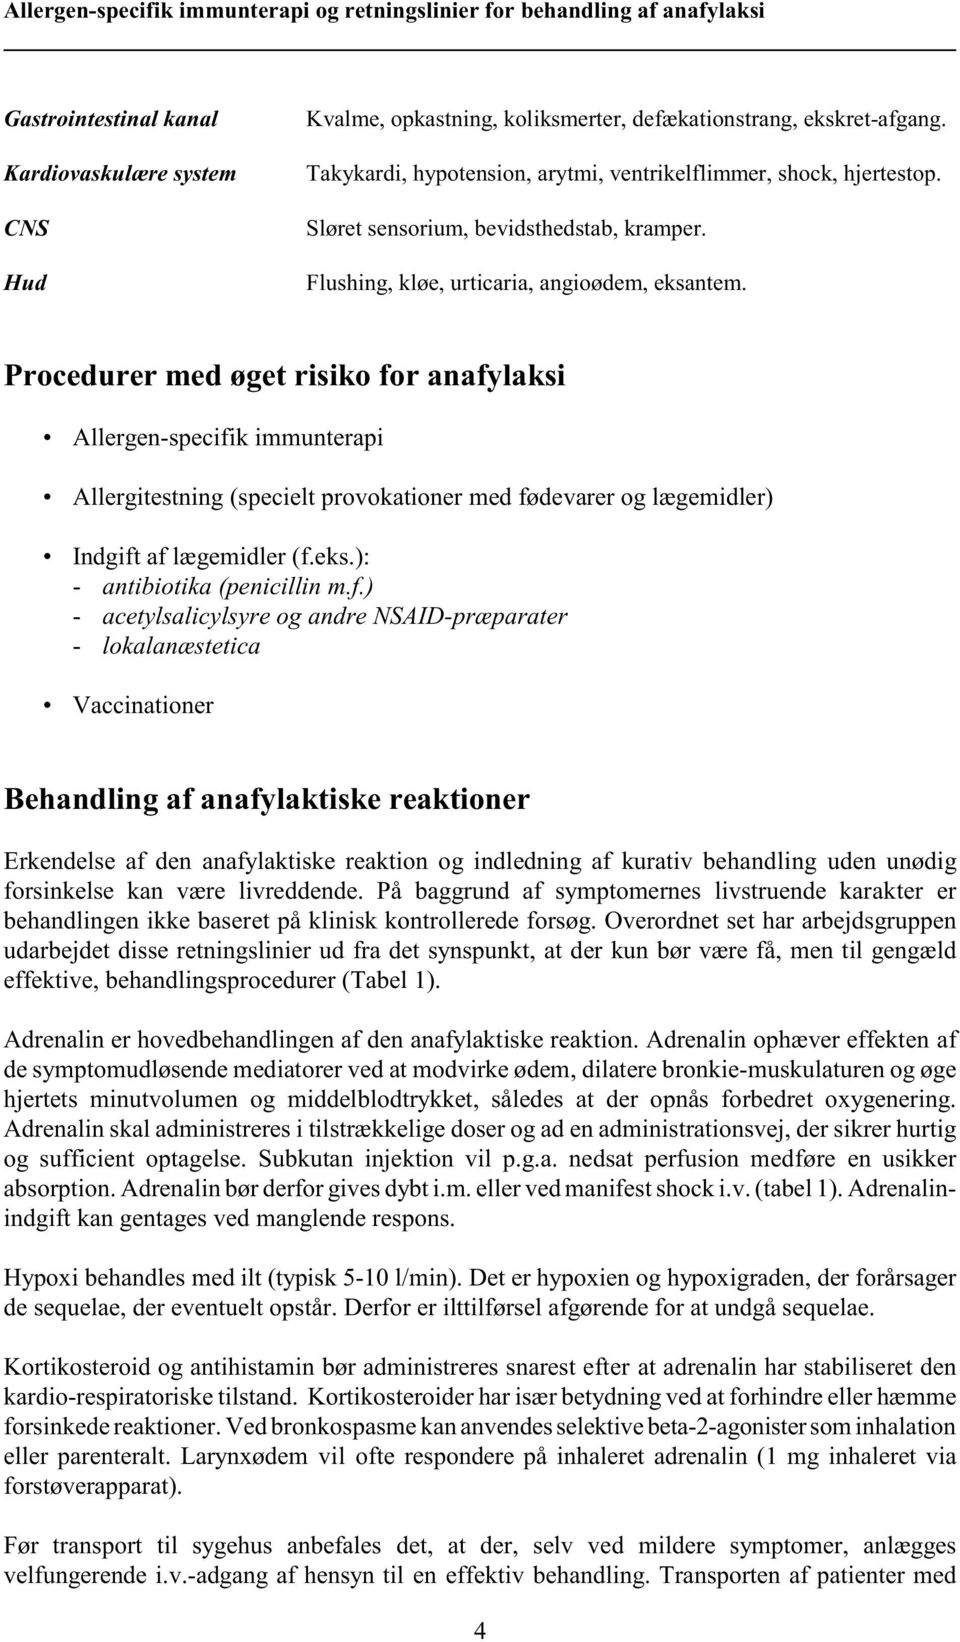 Procedurer med øget risiko for anafylaksi Allergen-specifik immunterapi Allergitestning (specielt provokationer med fødevarer og lægemidler) Indgift af lægemidler (f.eks.